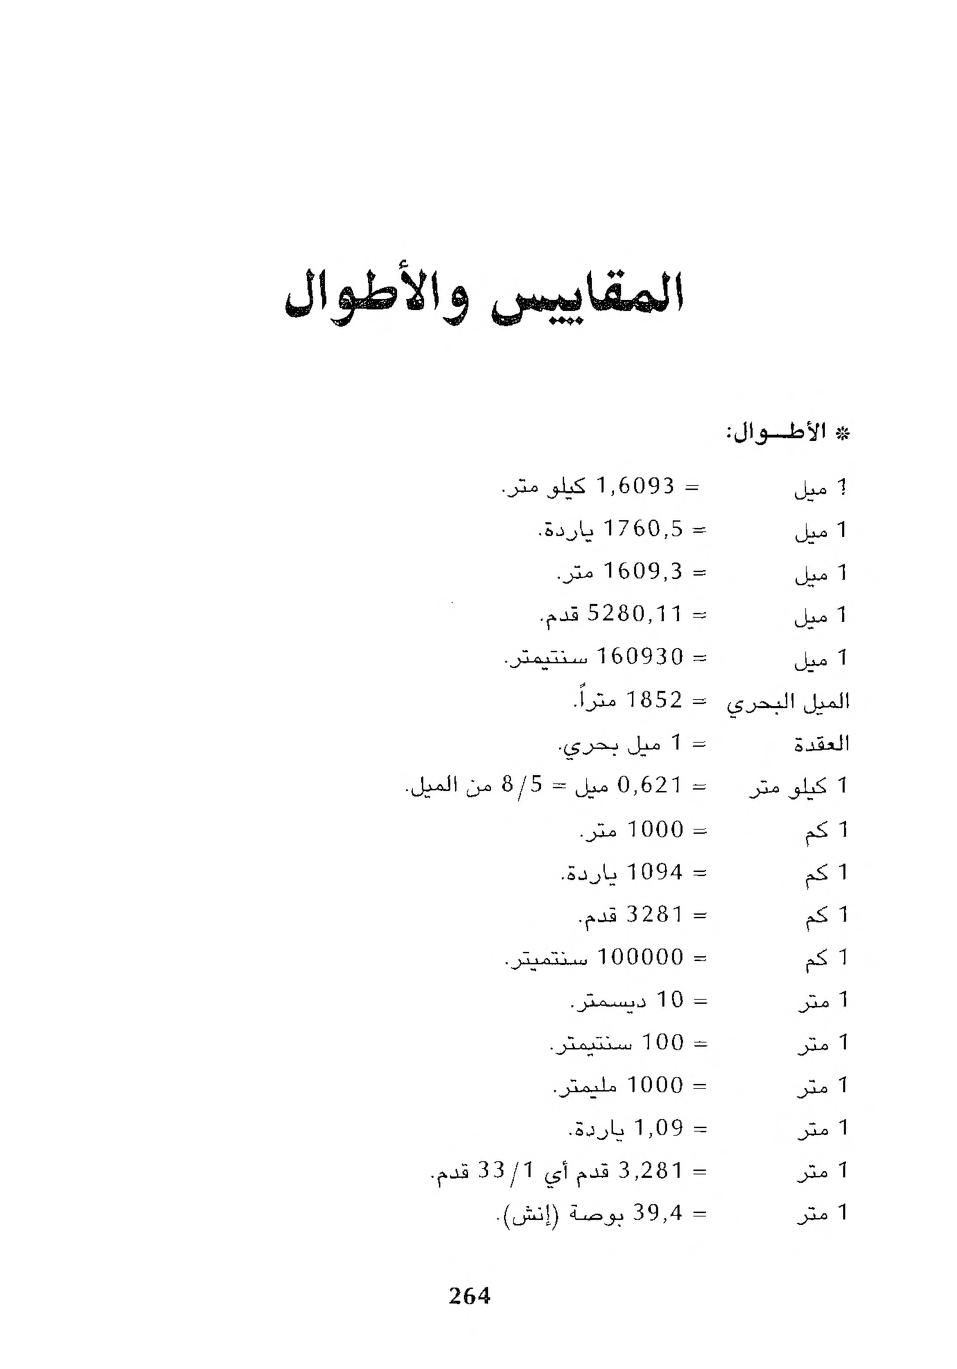 موسوعة شلال المعرفة نسرين الاحمد Free Download Borrow And Streaming Internet Archive In 2021 Thing 1 Math Math Equations